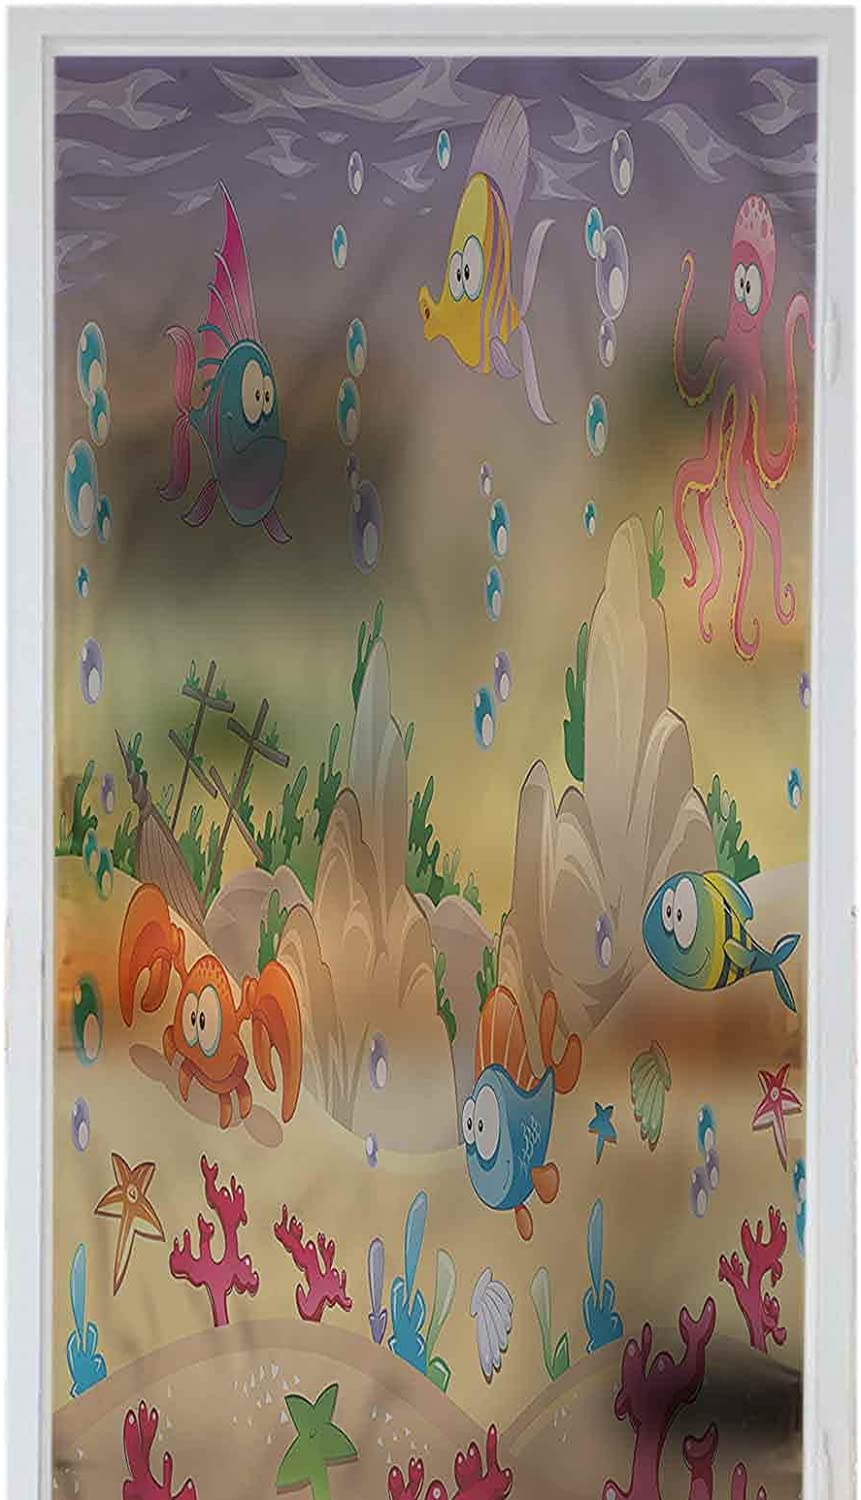 Stickers Bombing new work PVC Home Privacy Decor 35 New item Kids Cartoon Funny Underwater